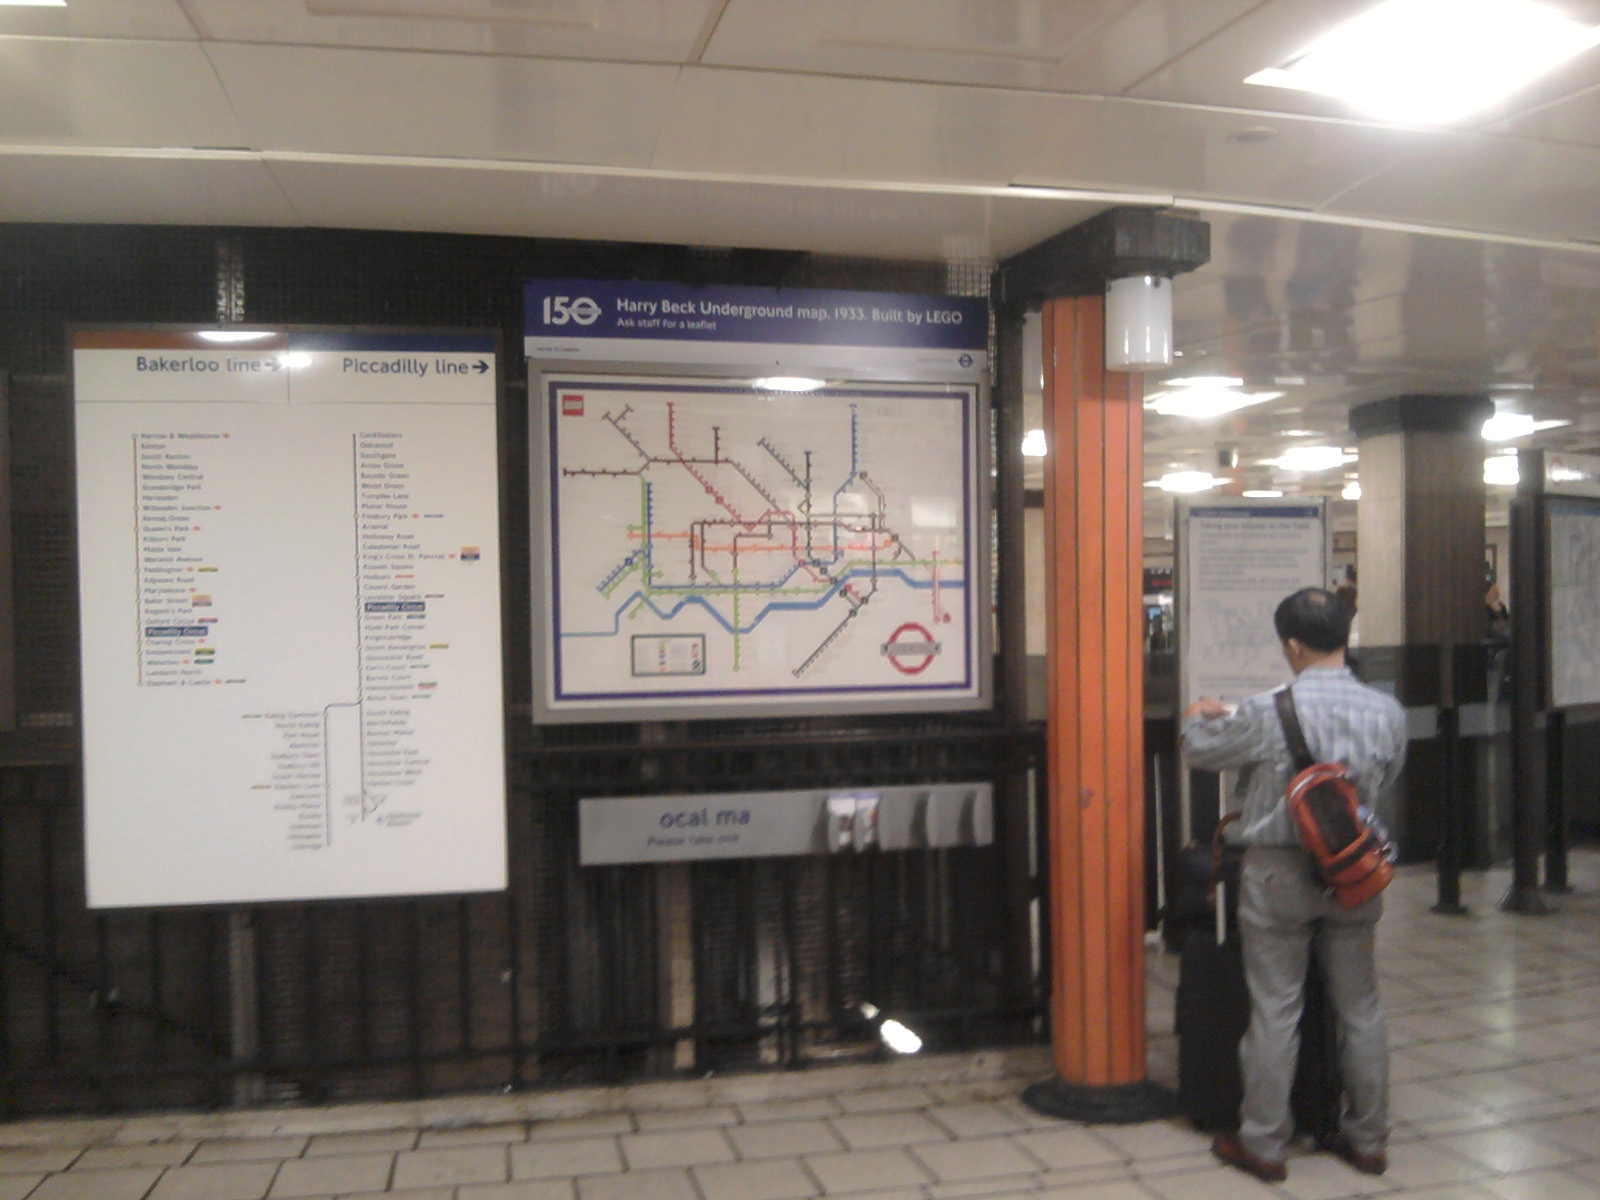 LEGO 1933 Harry Beck Underground Map in Piccadilly Circus